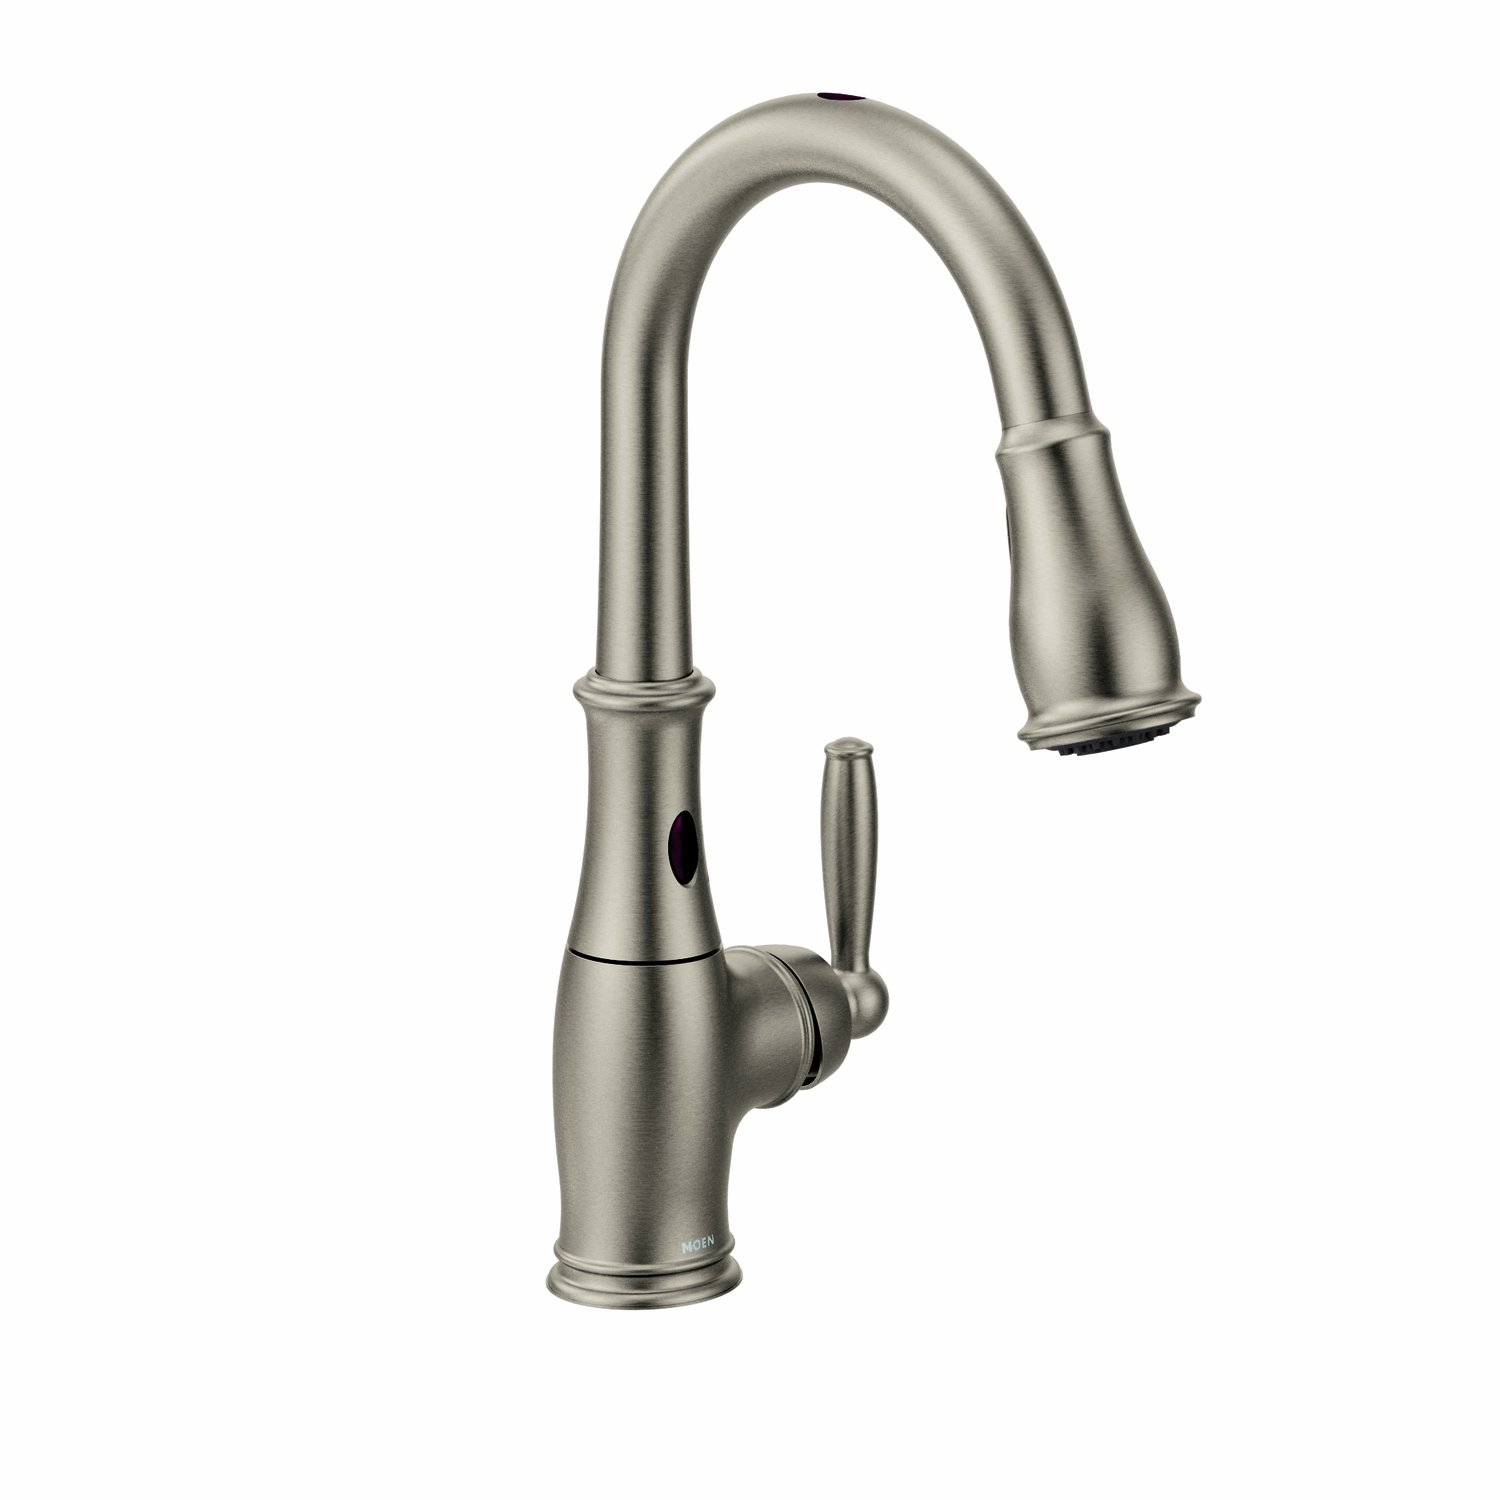 Moen 7185ESRS Brantford One-Handle High-Arc Pulldown Kitchen Faucet Featuring Reflex and MotionSense, Spot Resist Stainless by Moen (Image #1)